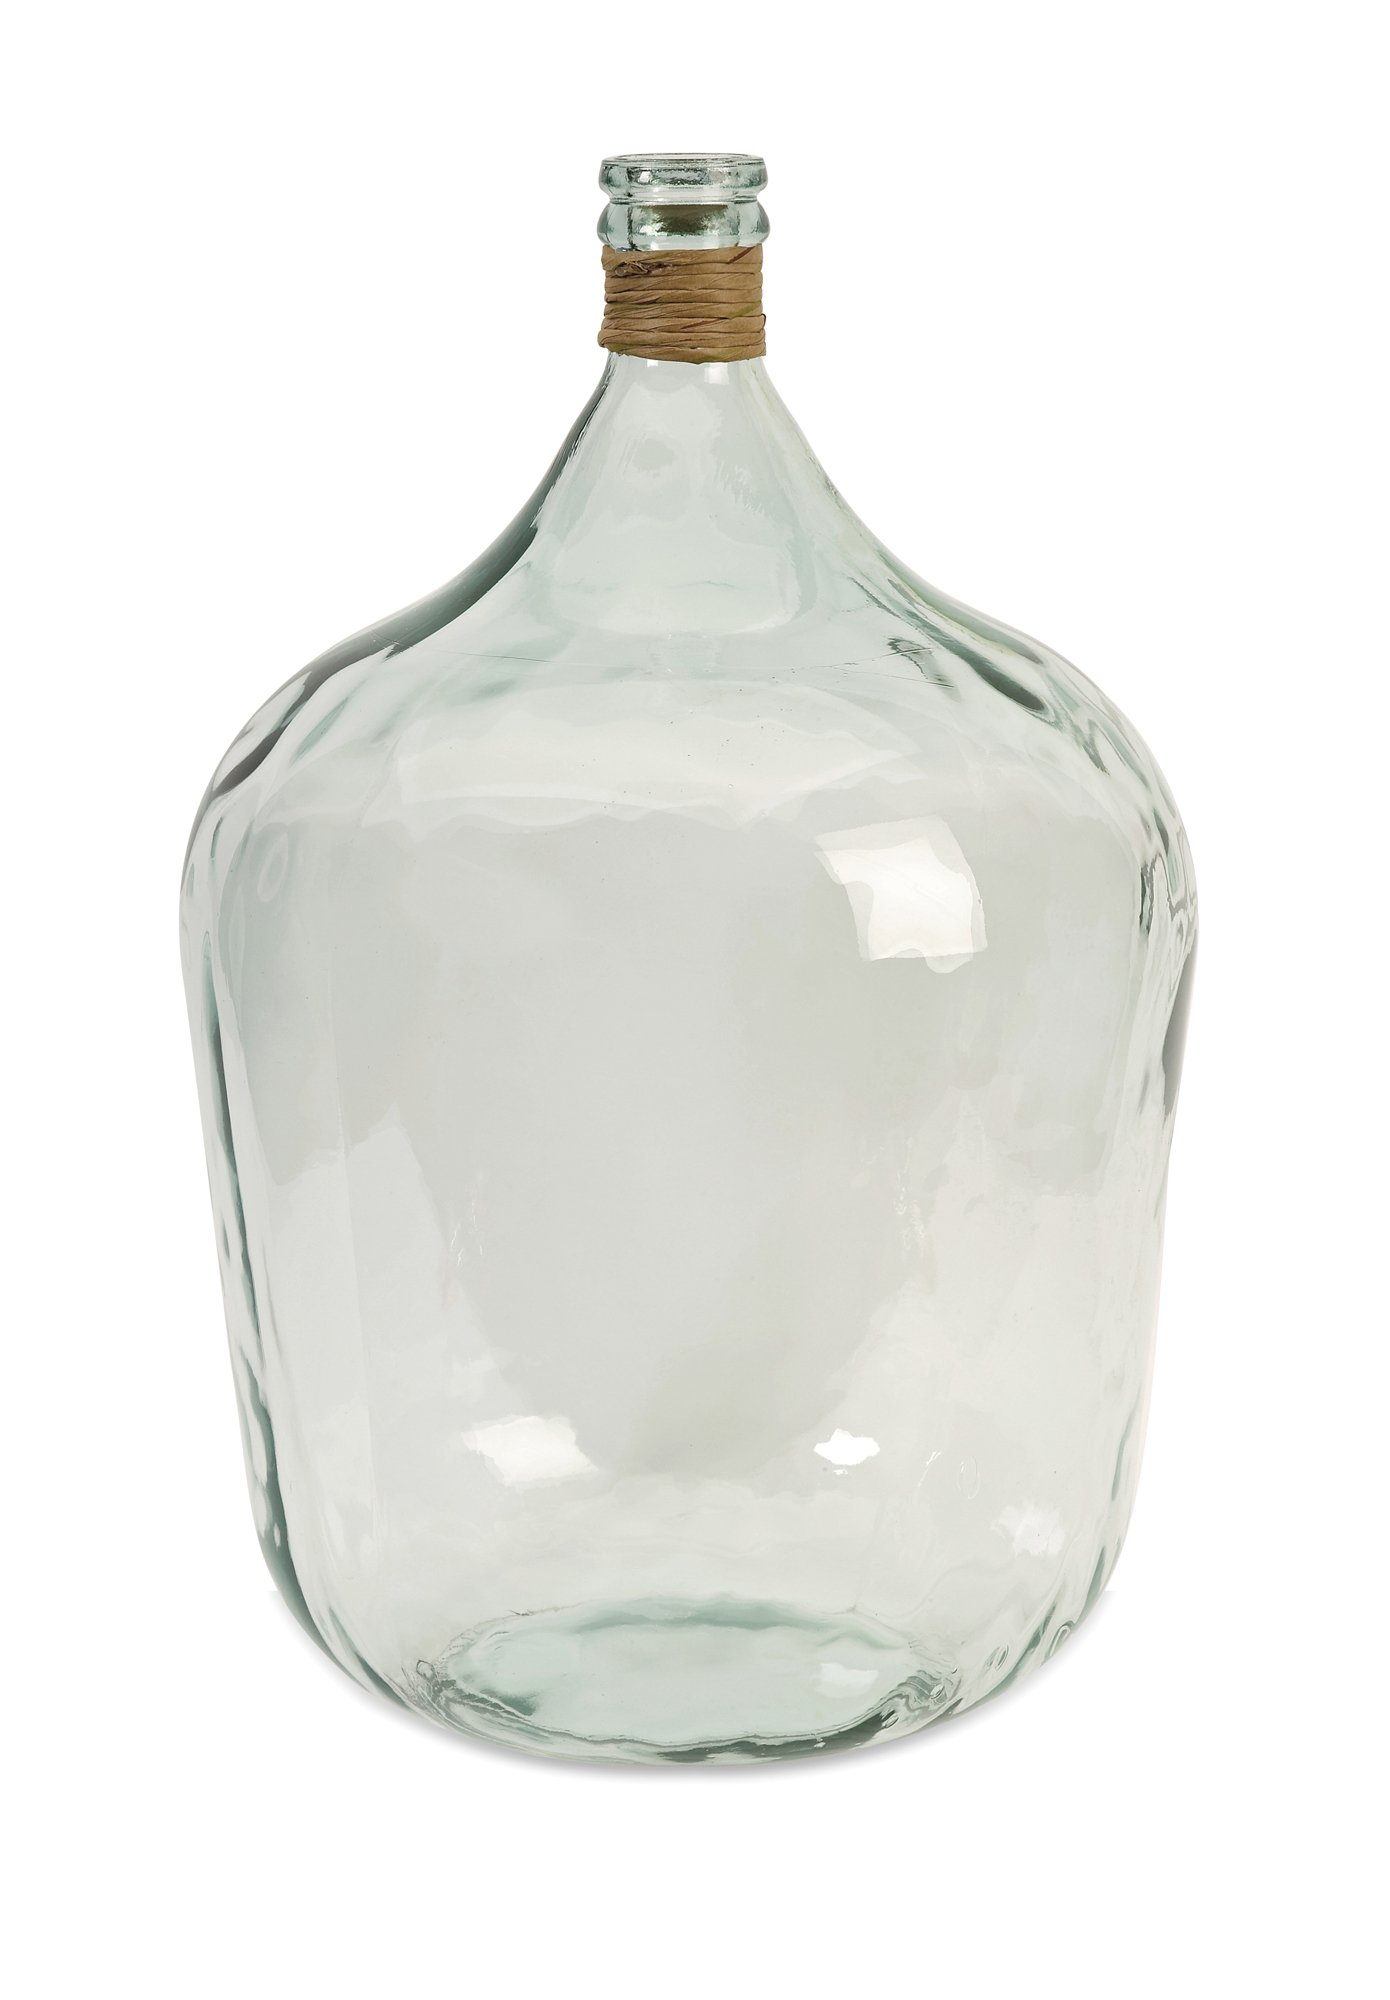 IMAX 84507 Boccioni Recycled Glass Jug, Large by Imax